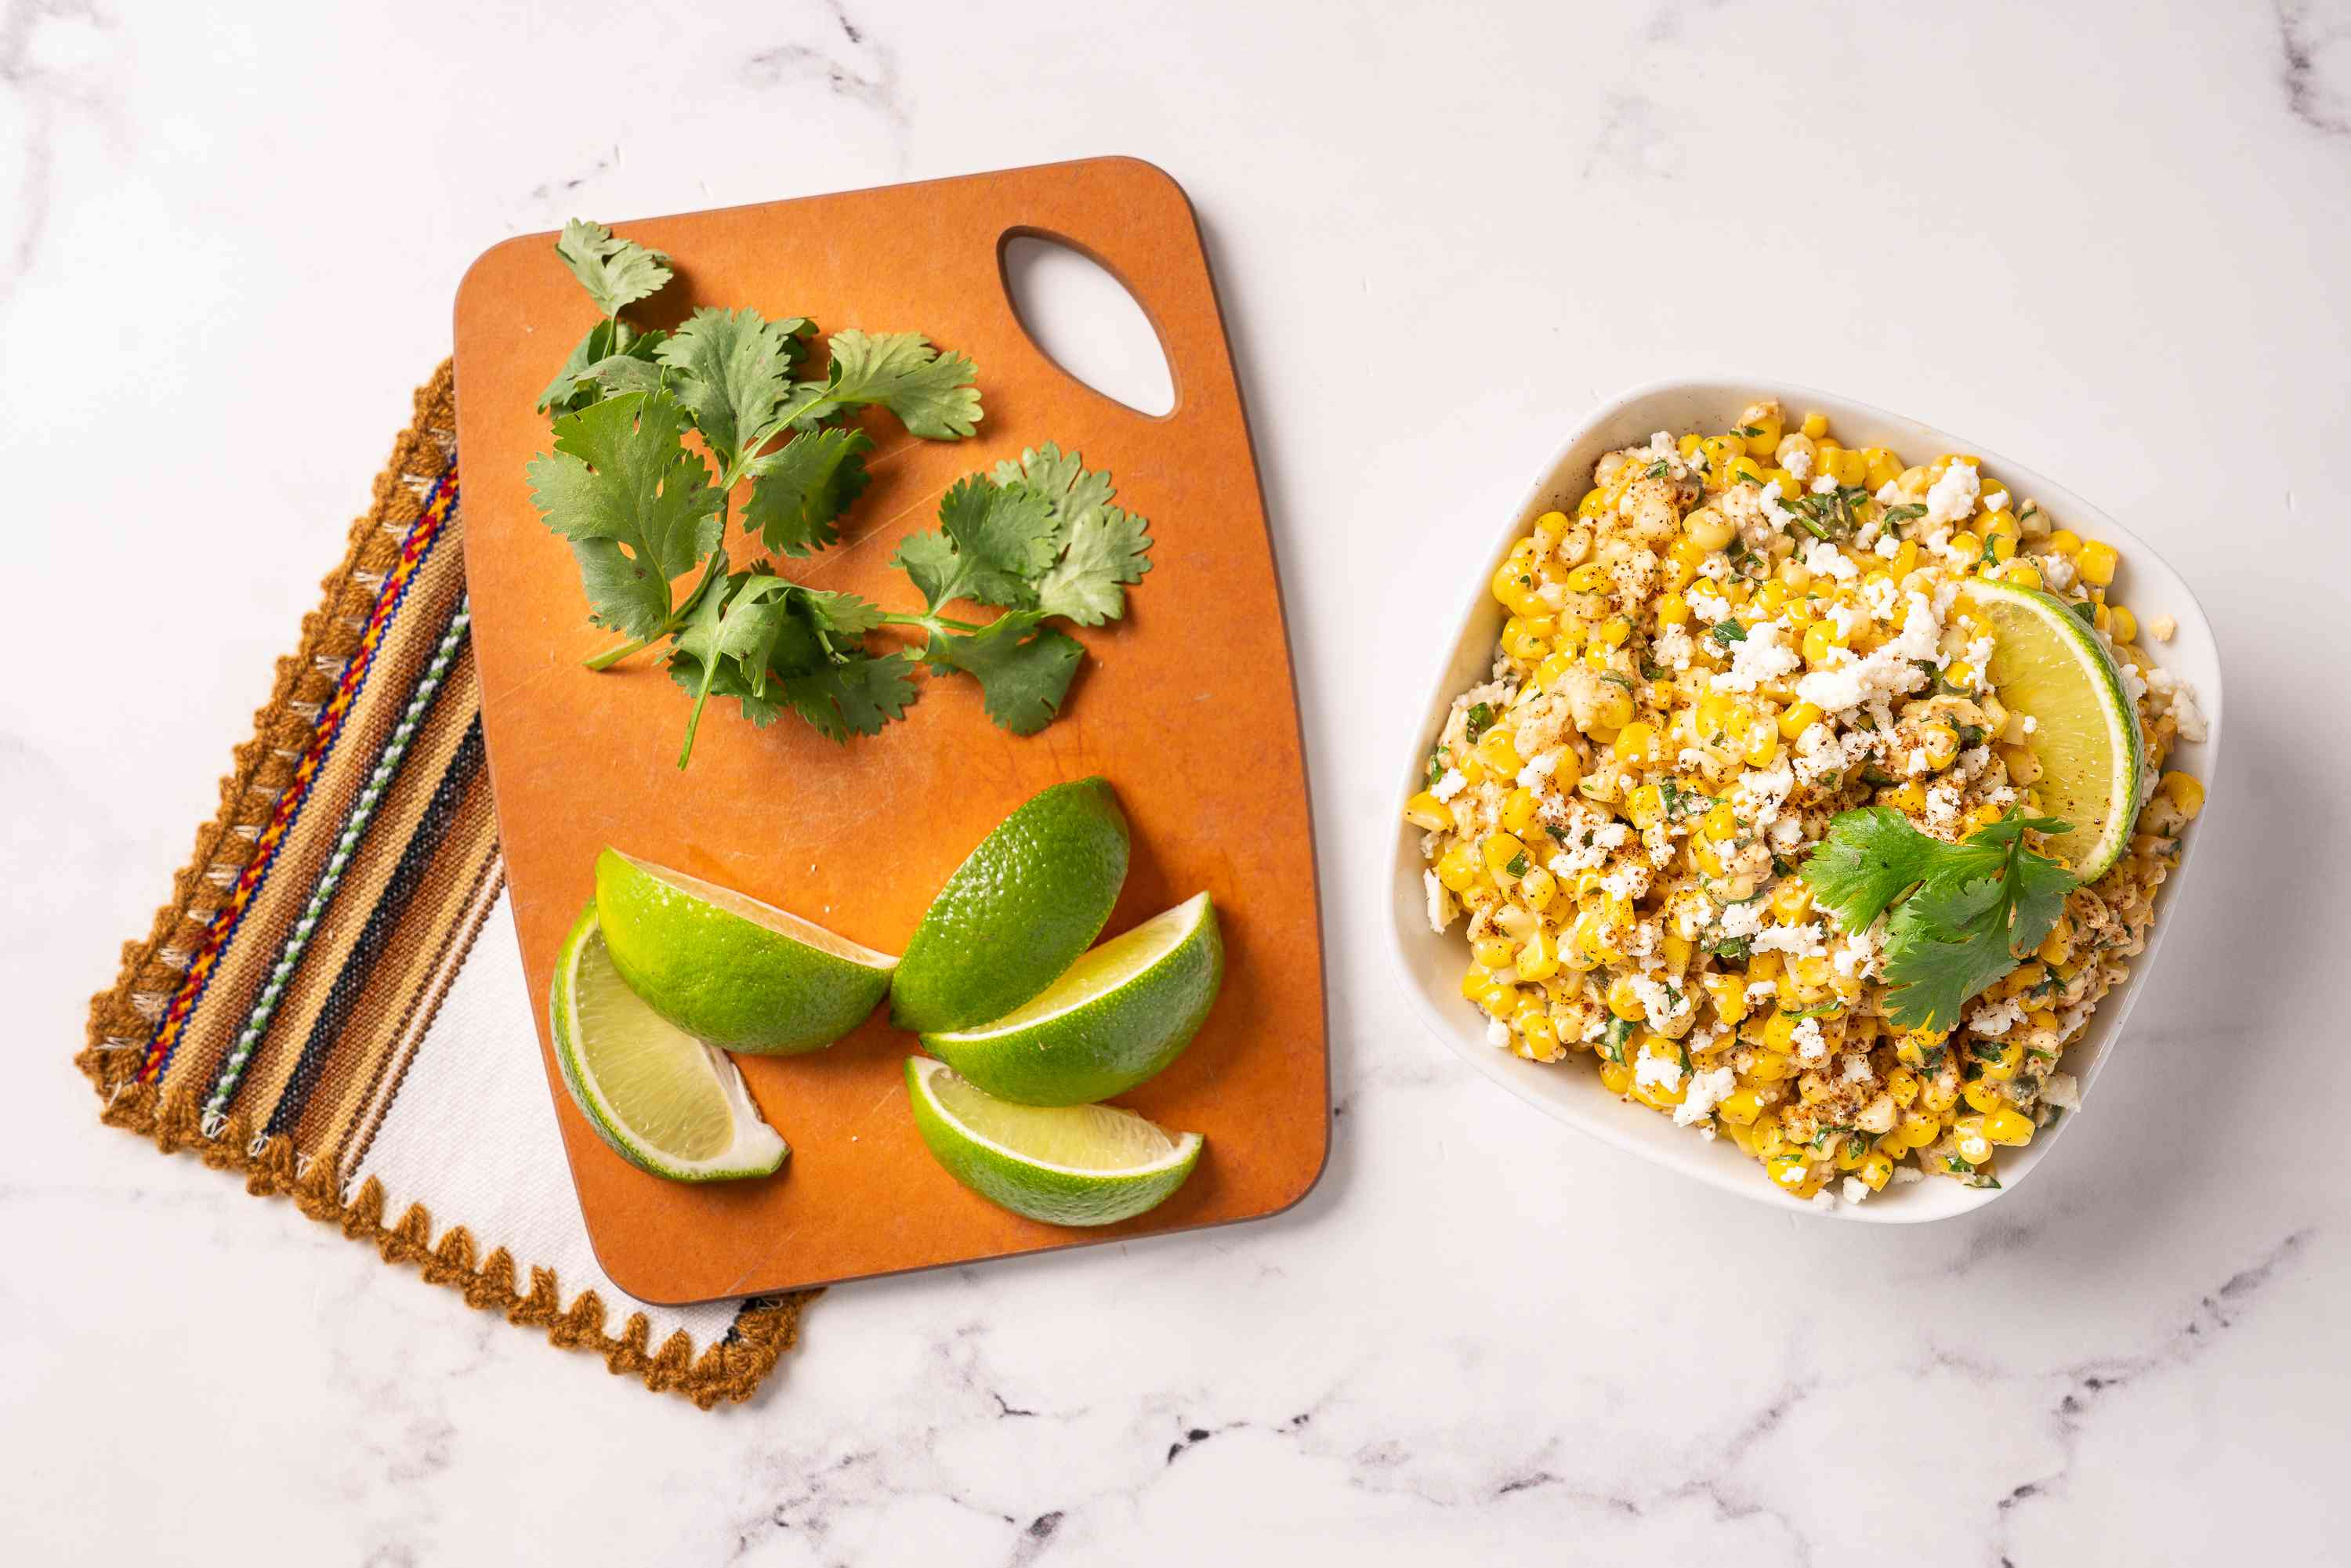 Esquites with limes and cilantro on the side